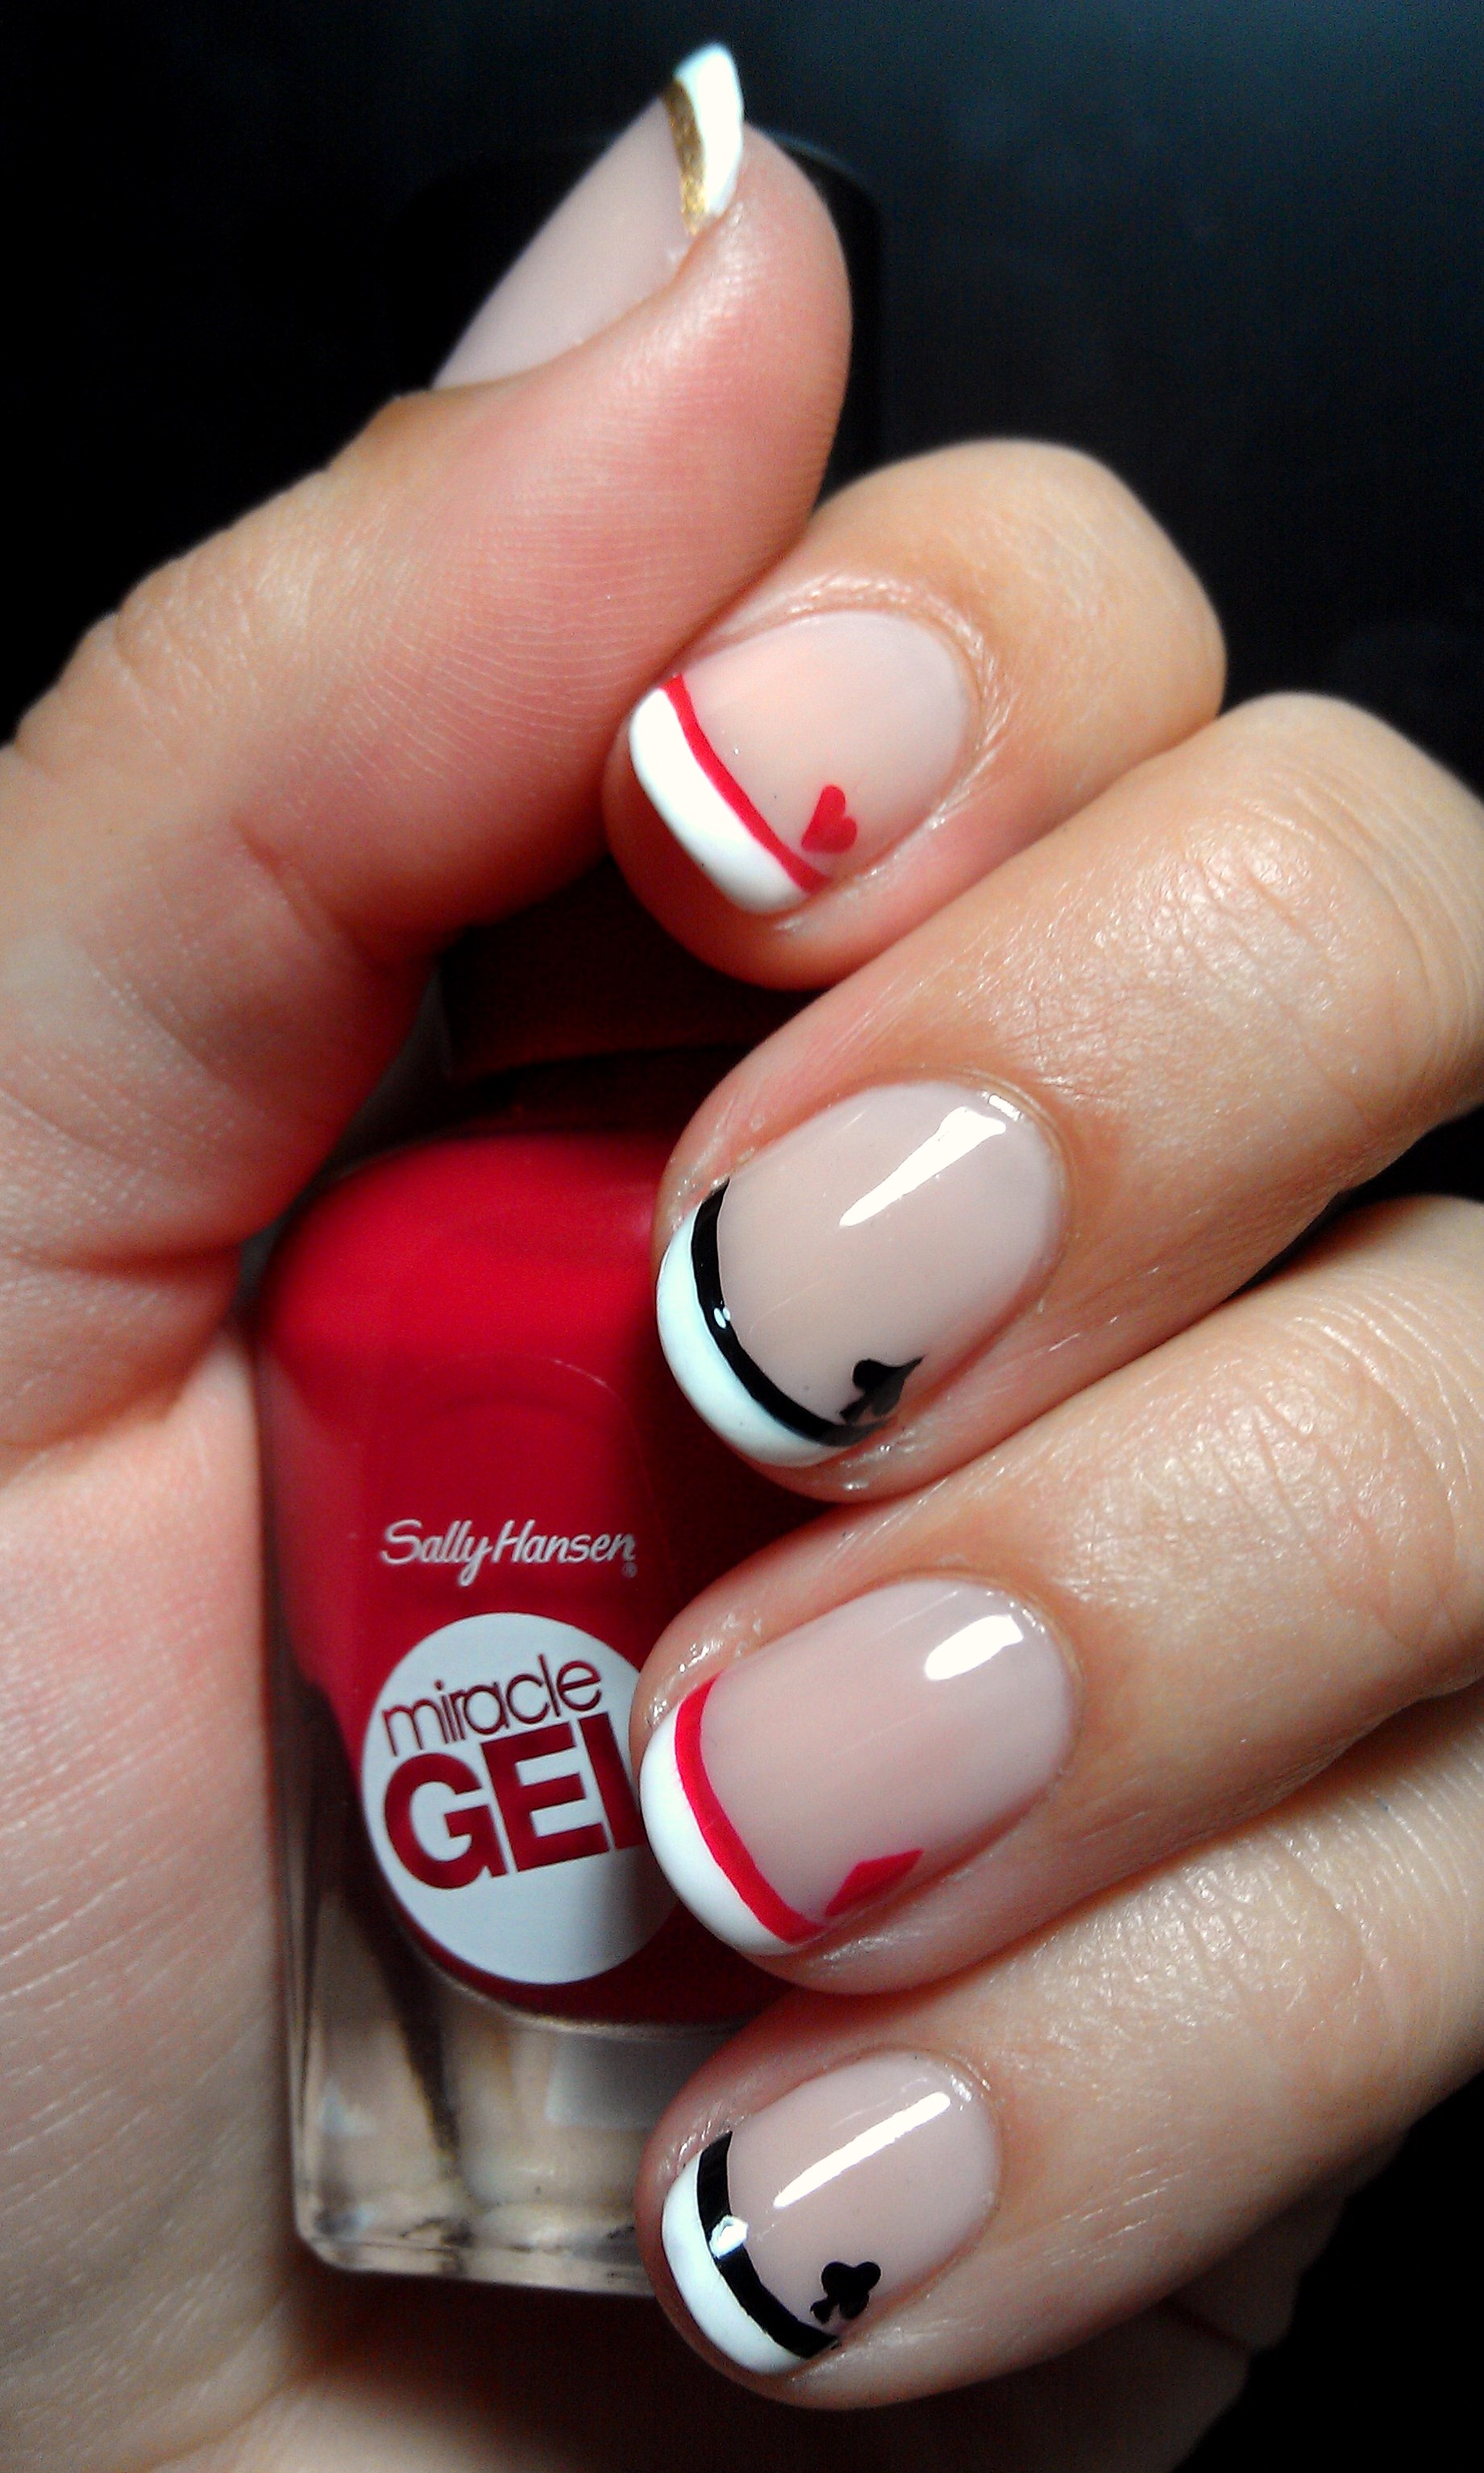 Disney Queen Of Hearts French Manicure – Emi's Manis